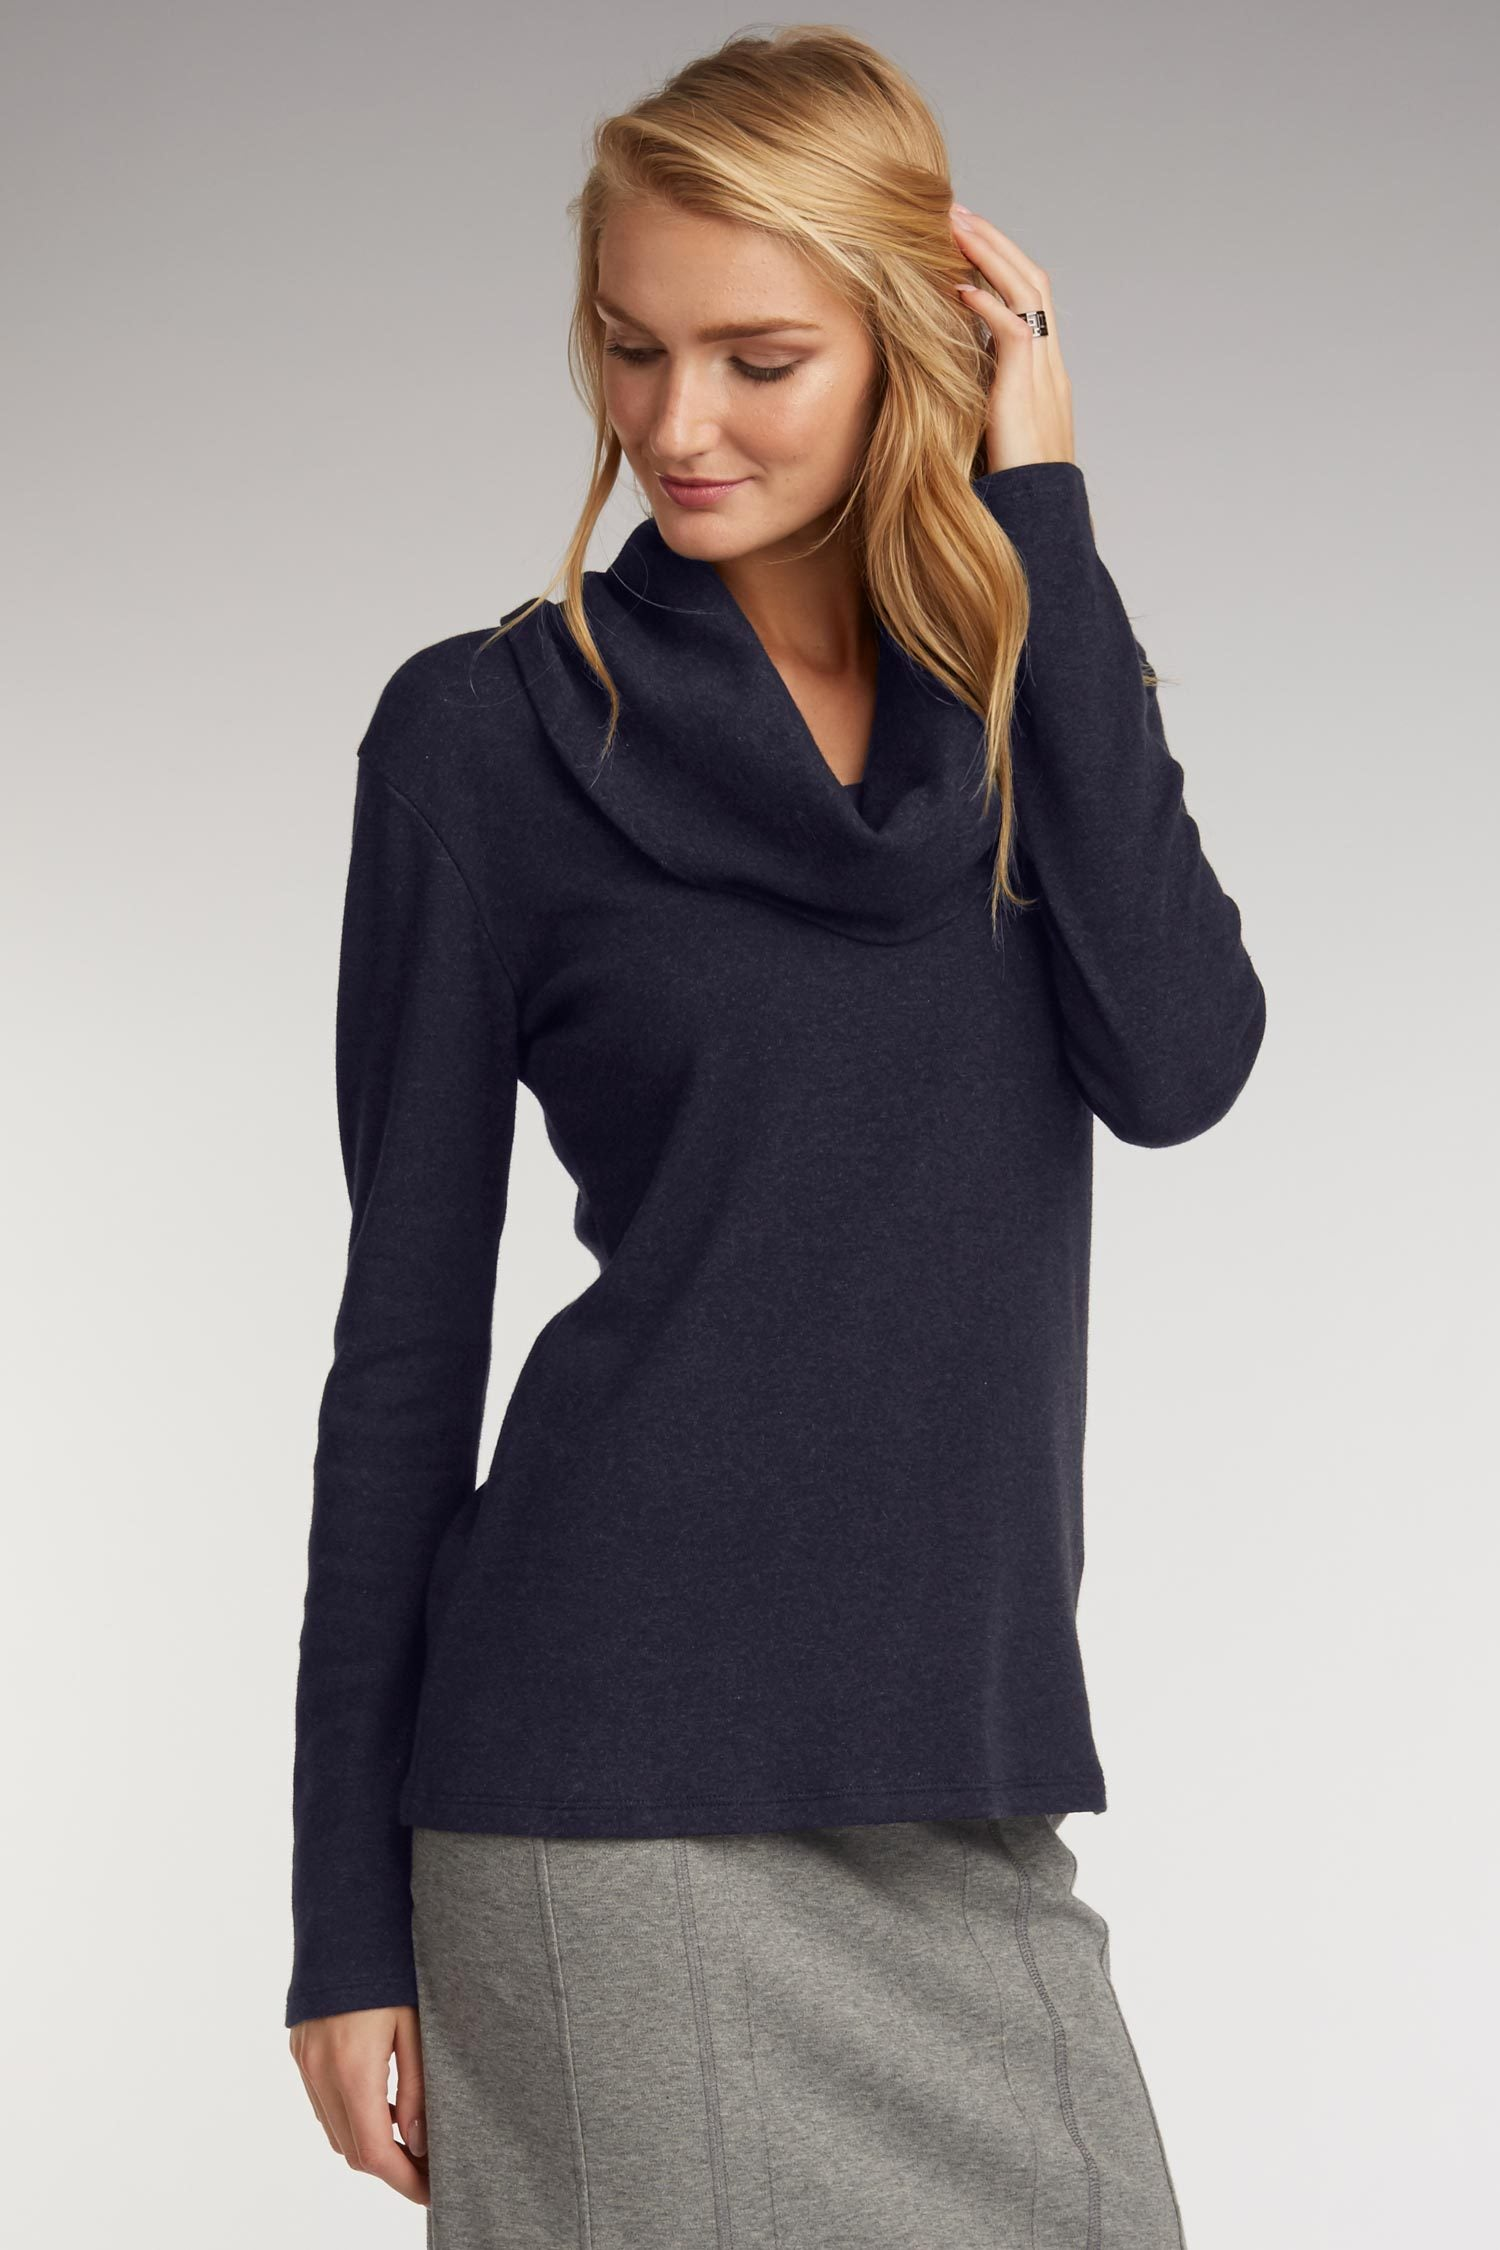 Womens Cowl Neck Top in Navy Blue Organic Cotton